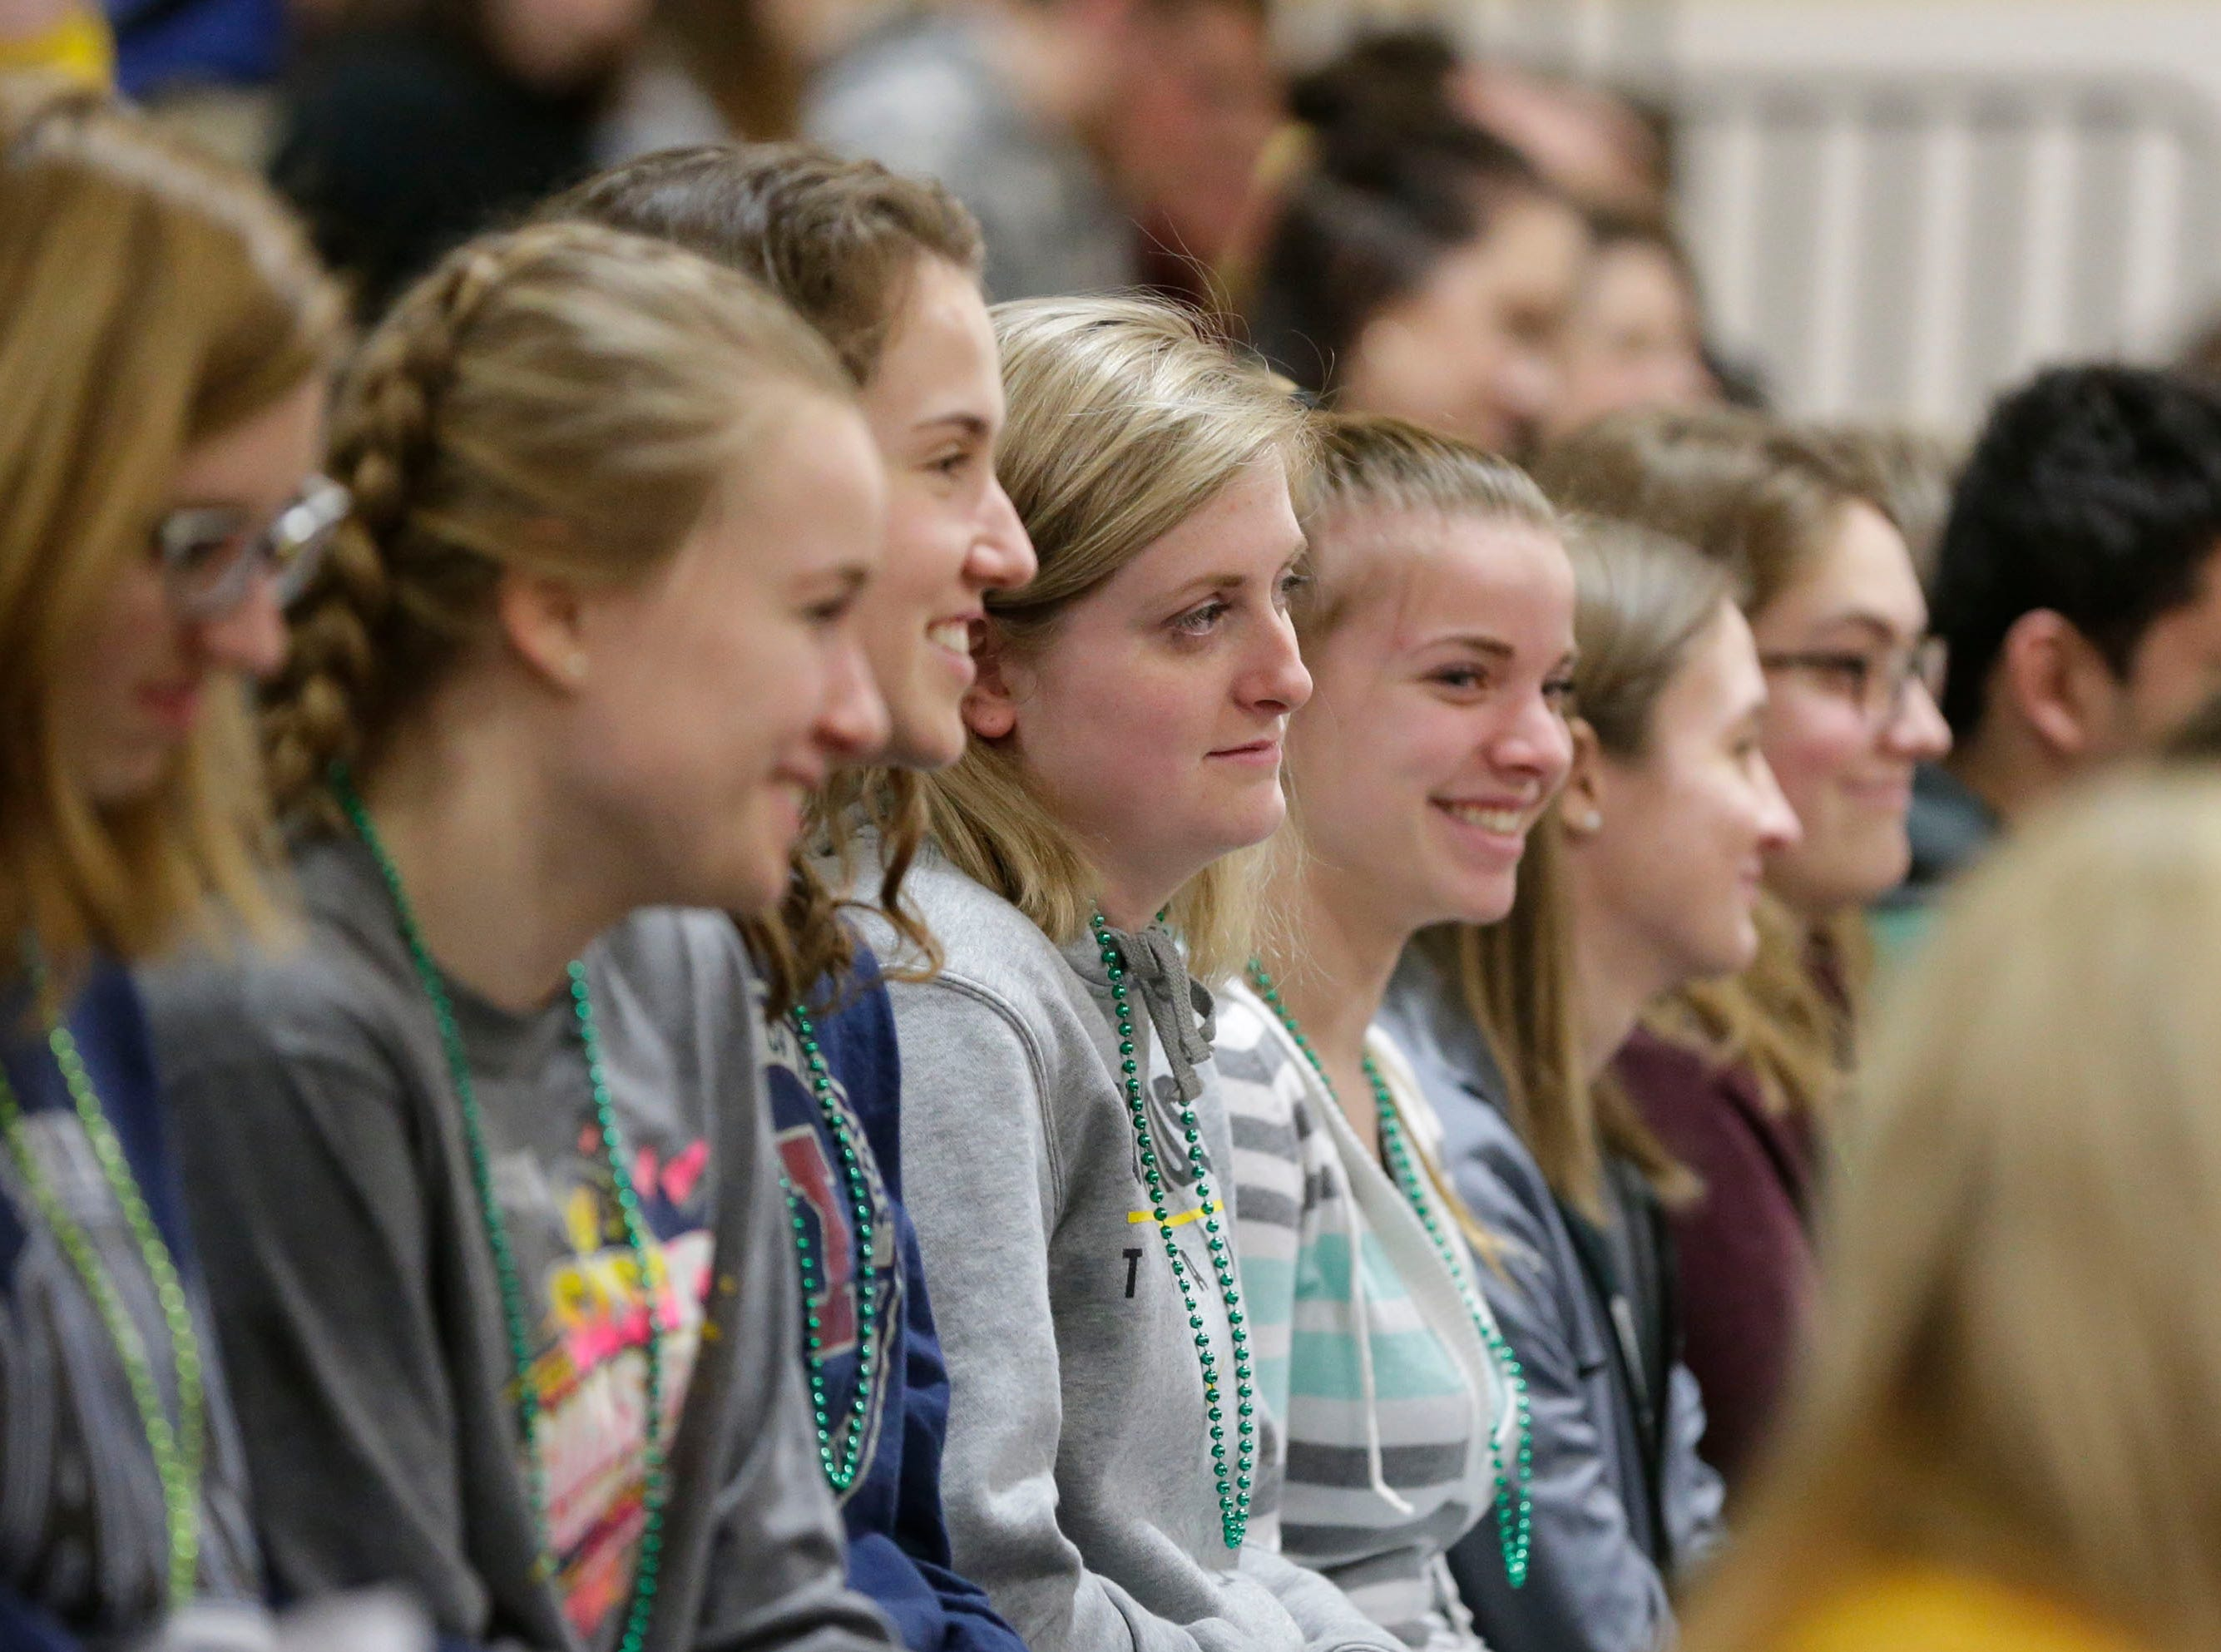 Students listen to speeches about the Sheboygan Lutheran basketball team during a pep rally, Thursday, March 14, 2109, in Sheboygan, Wis. The Crusaders will compete in WIAA Div. 5 basketball competition.